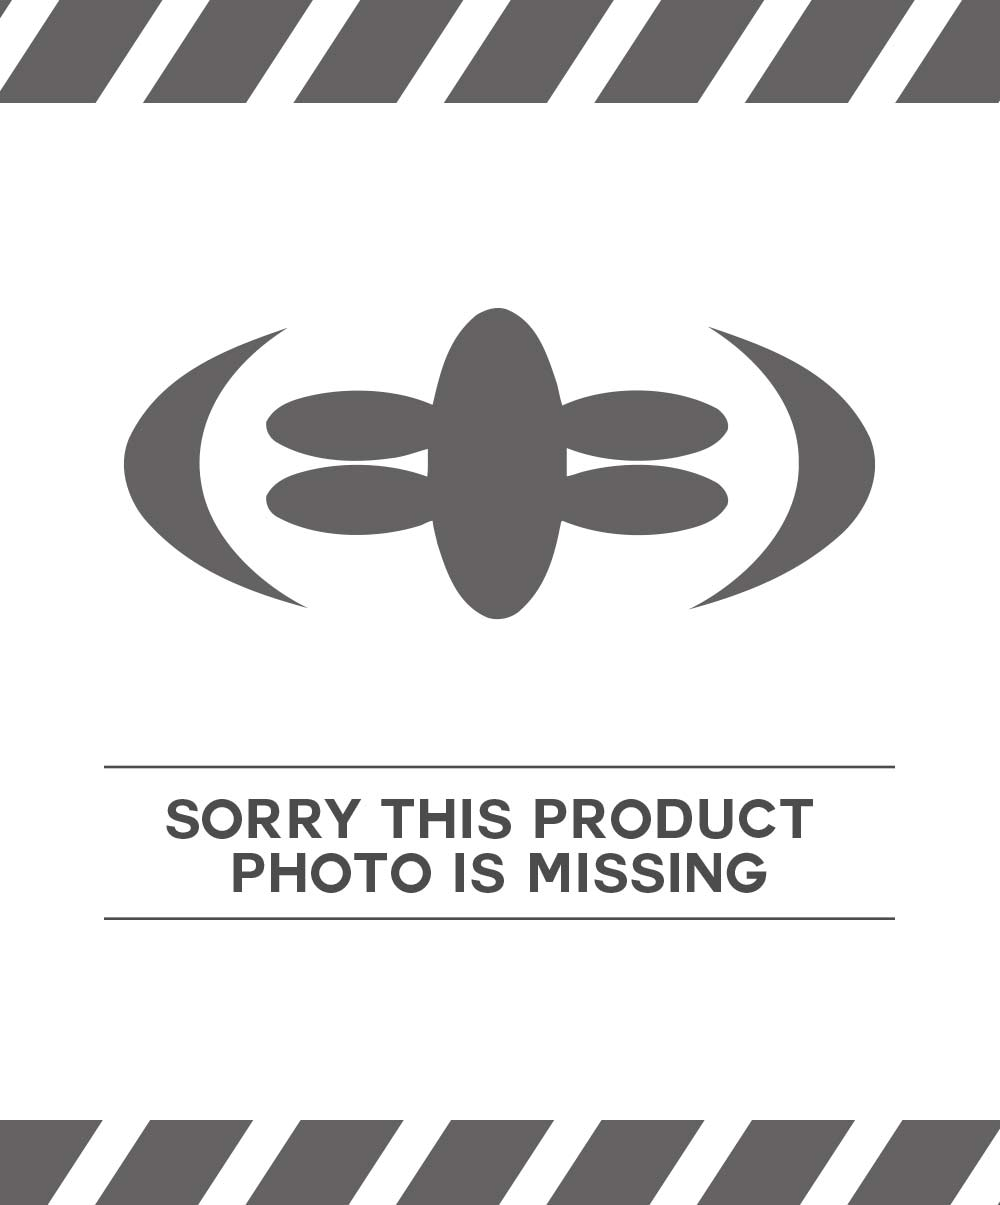 Santa Cruz. 9.98 Knox Punk Reissue Deck.